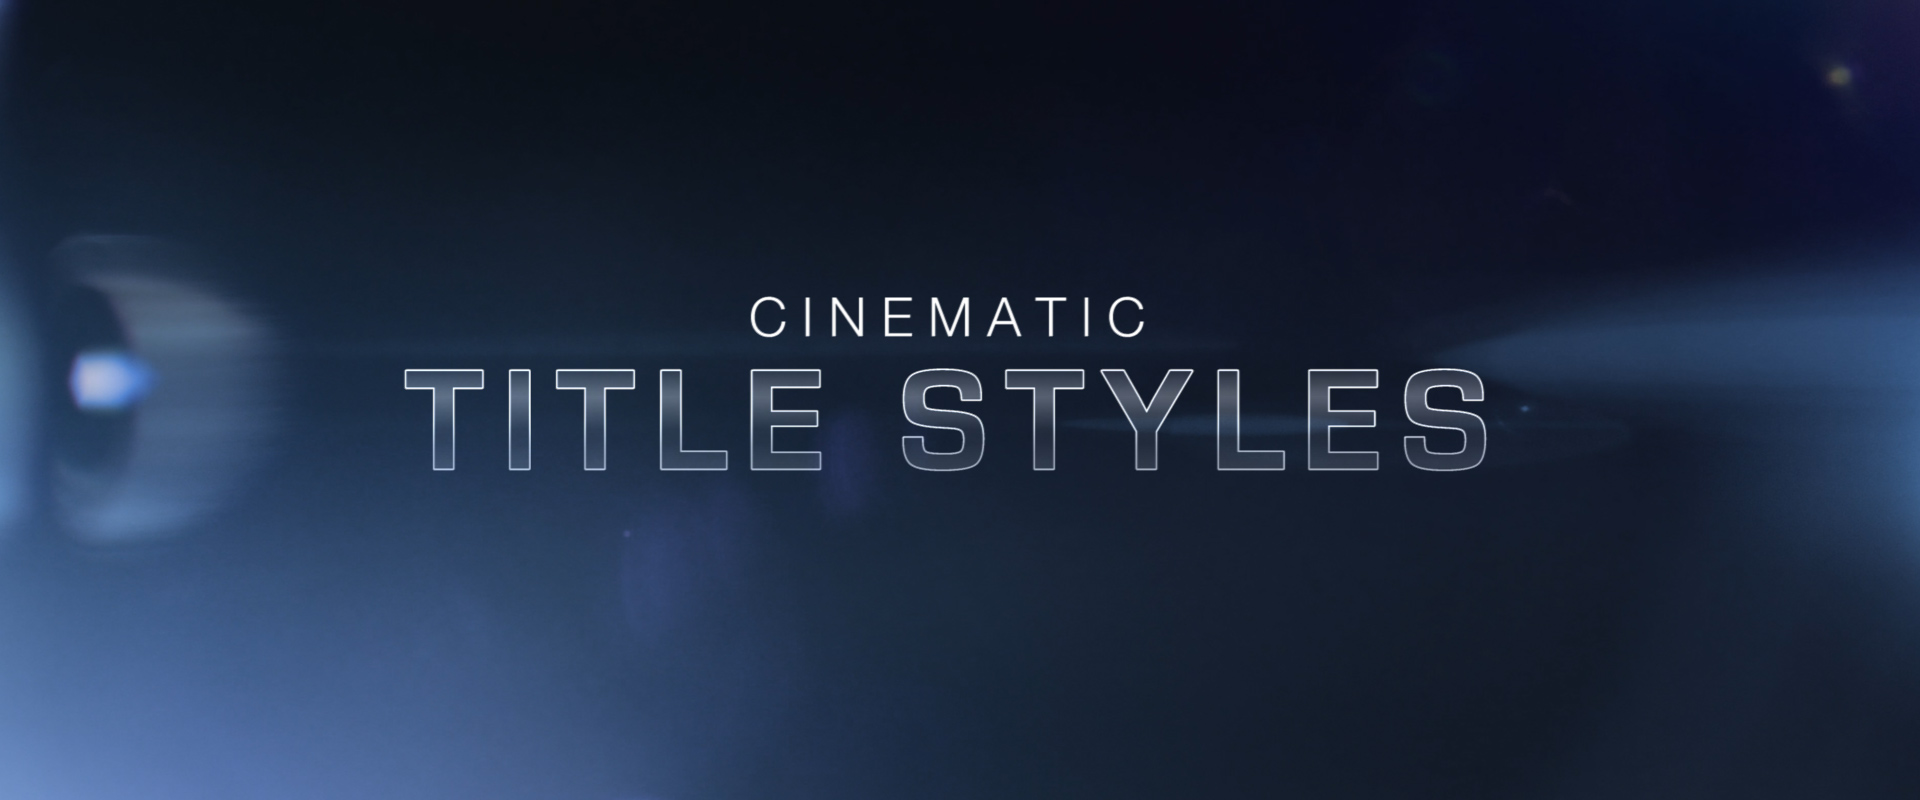 free cinematic title style library for premiere pro cinematic titles